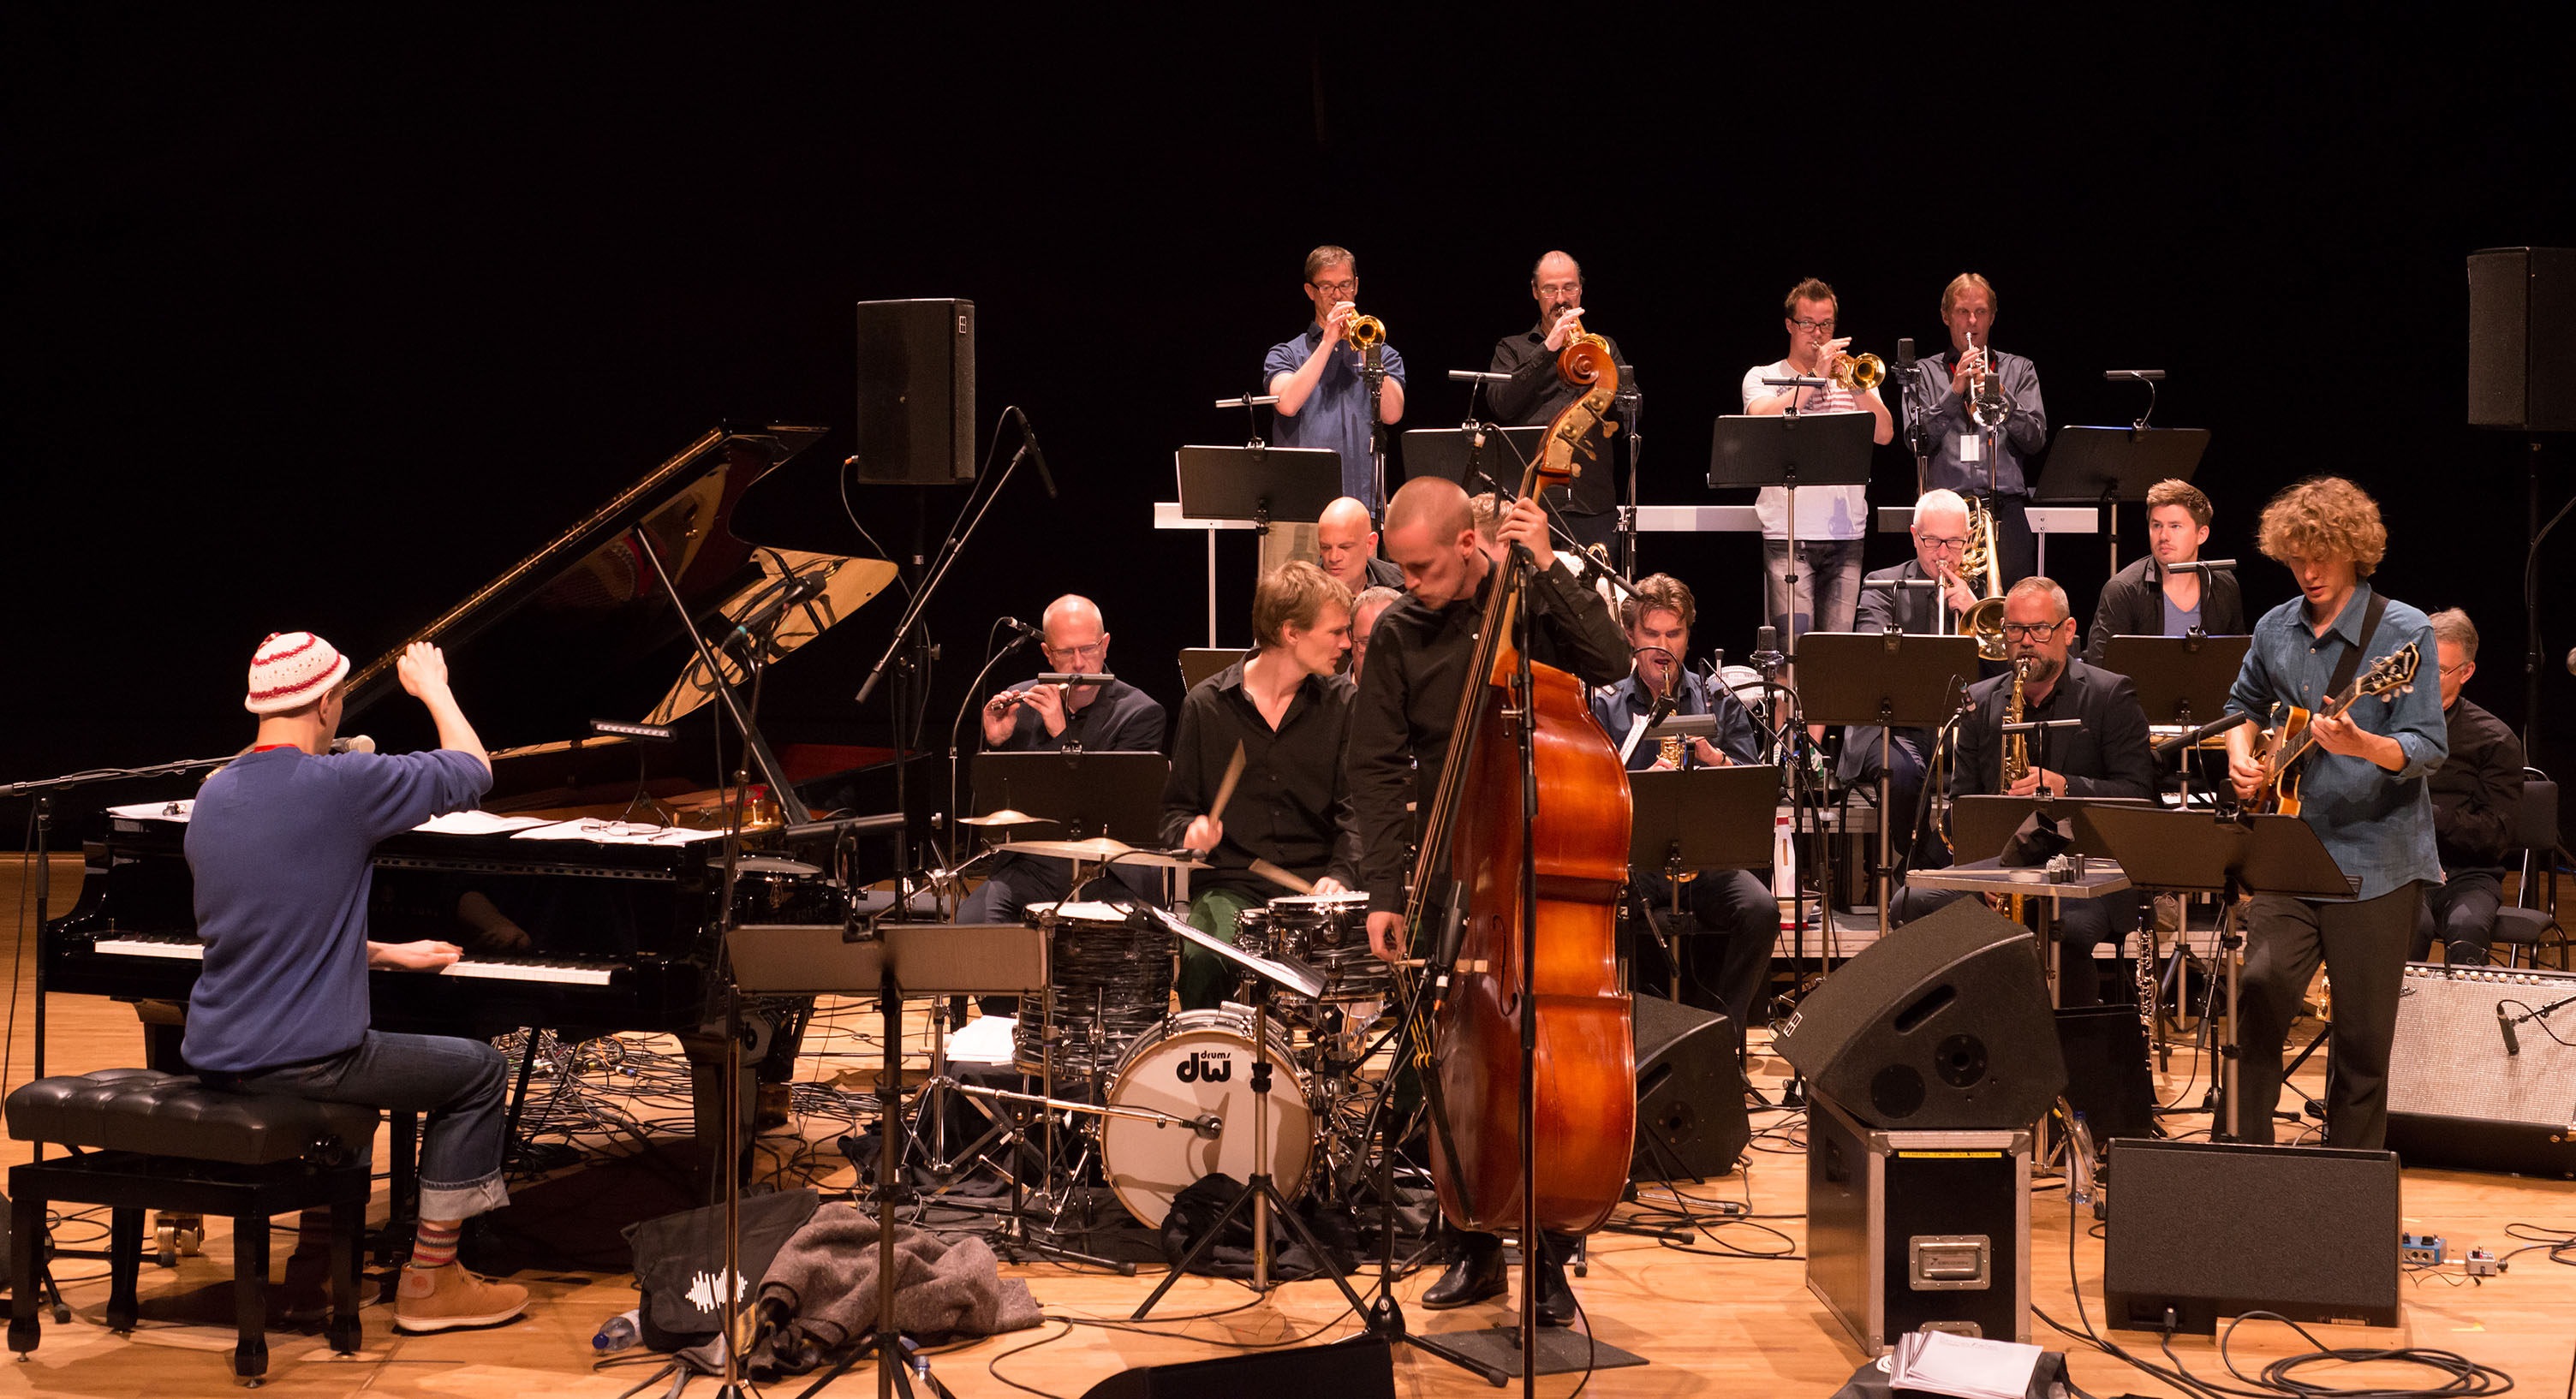 Django bates - norrbotten big band commission, luleå, sweden ju